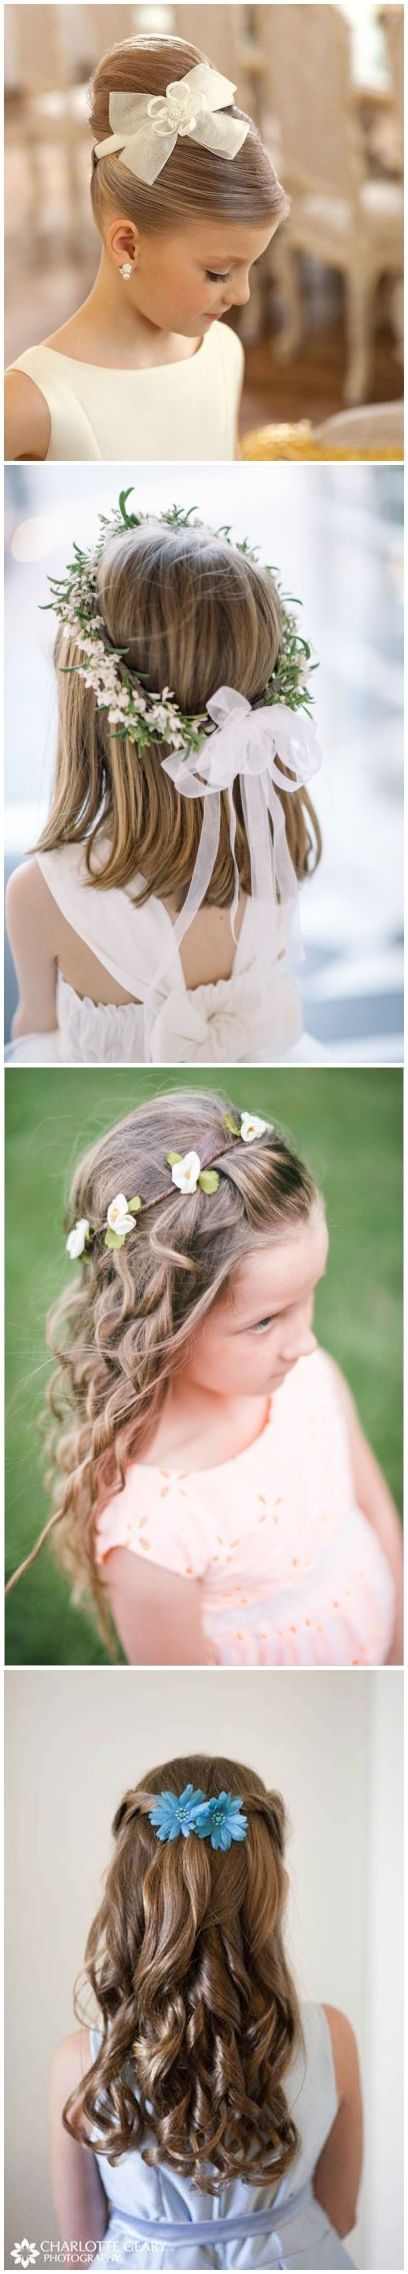 Pin by hanne Álamo on peinados pinterest wedding hairstyles